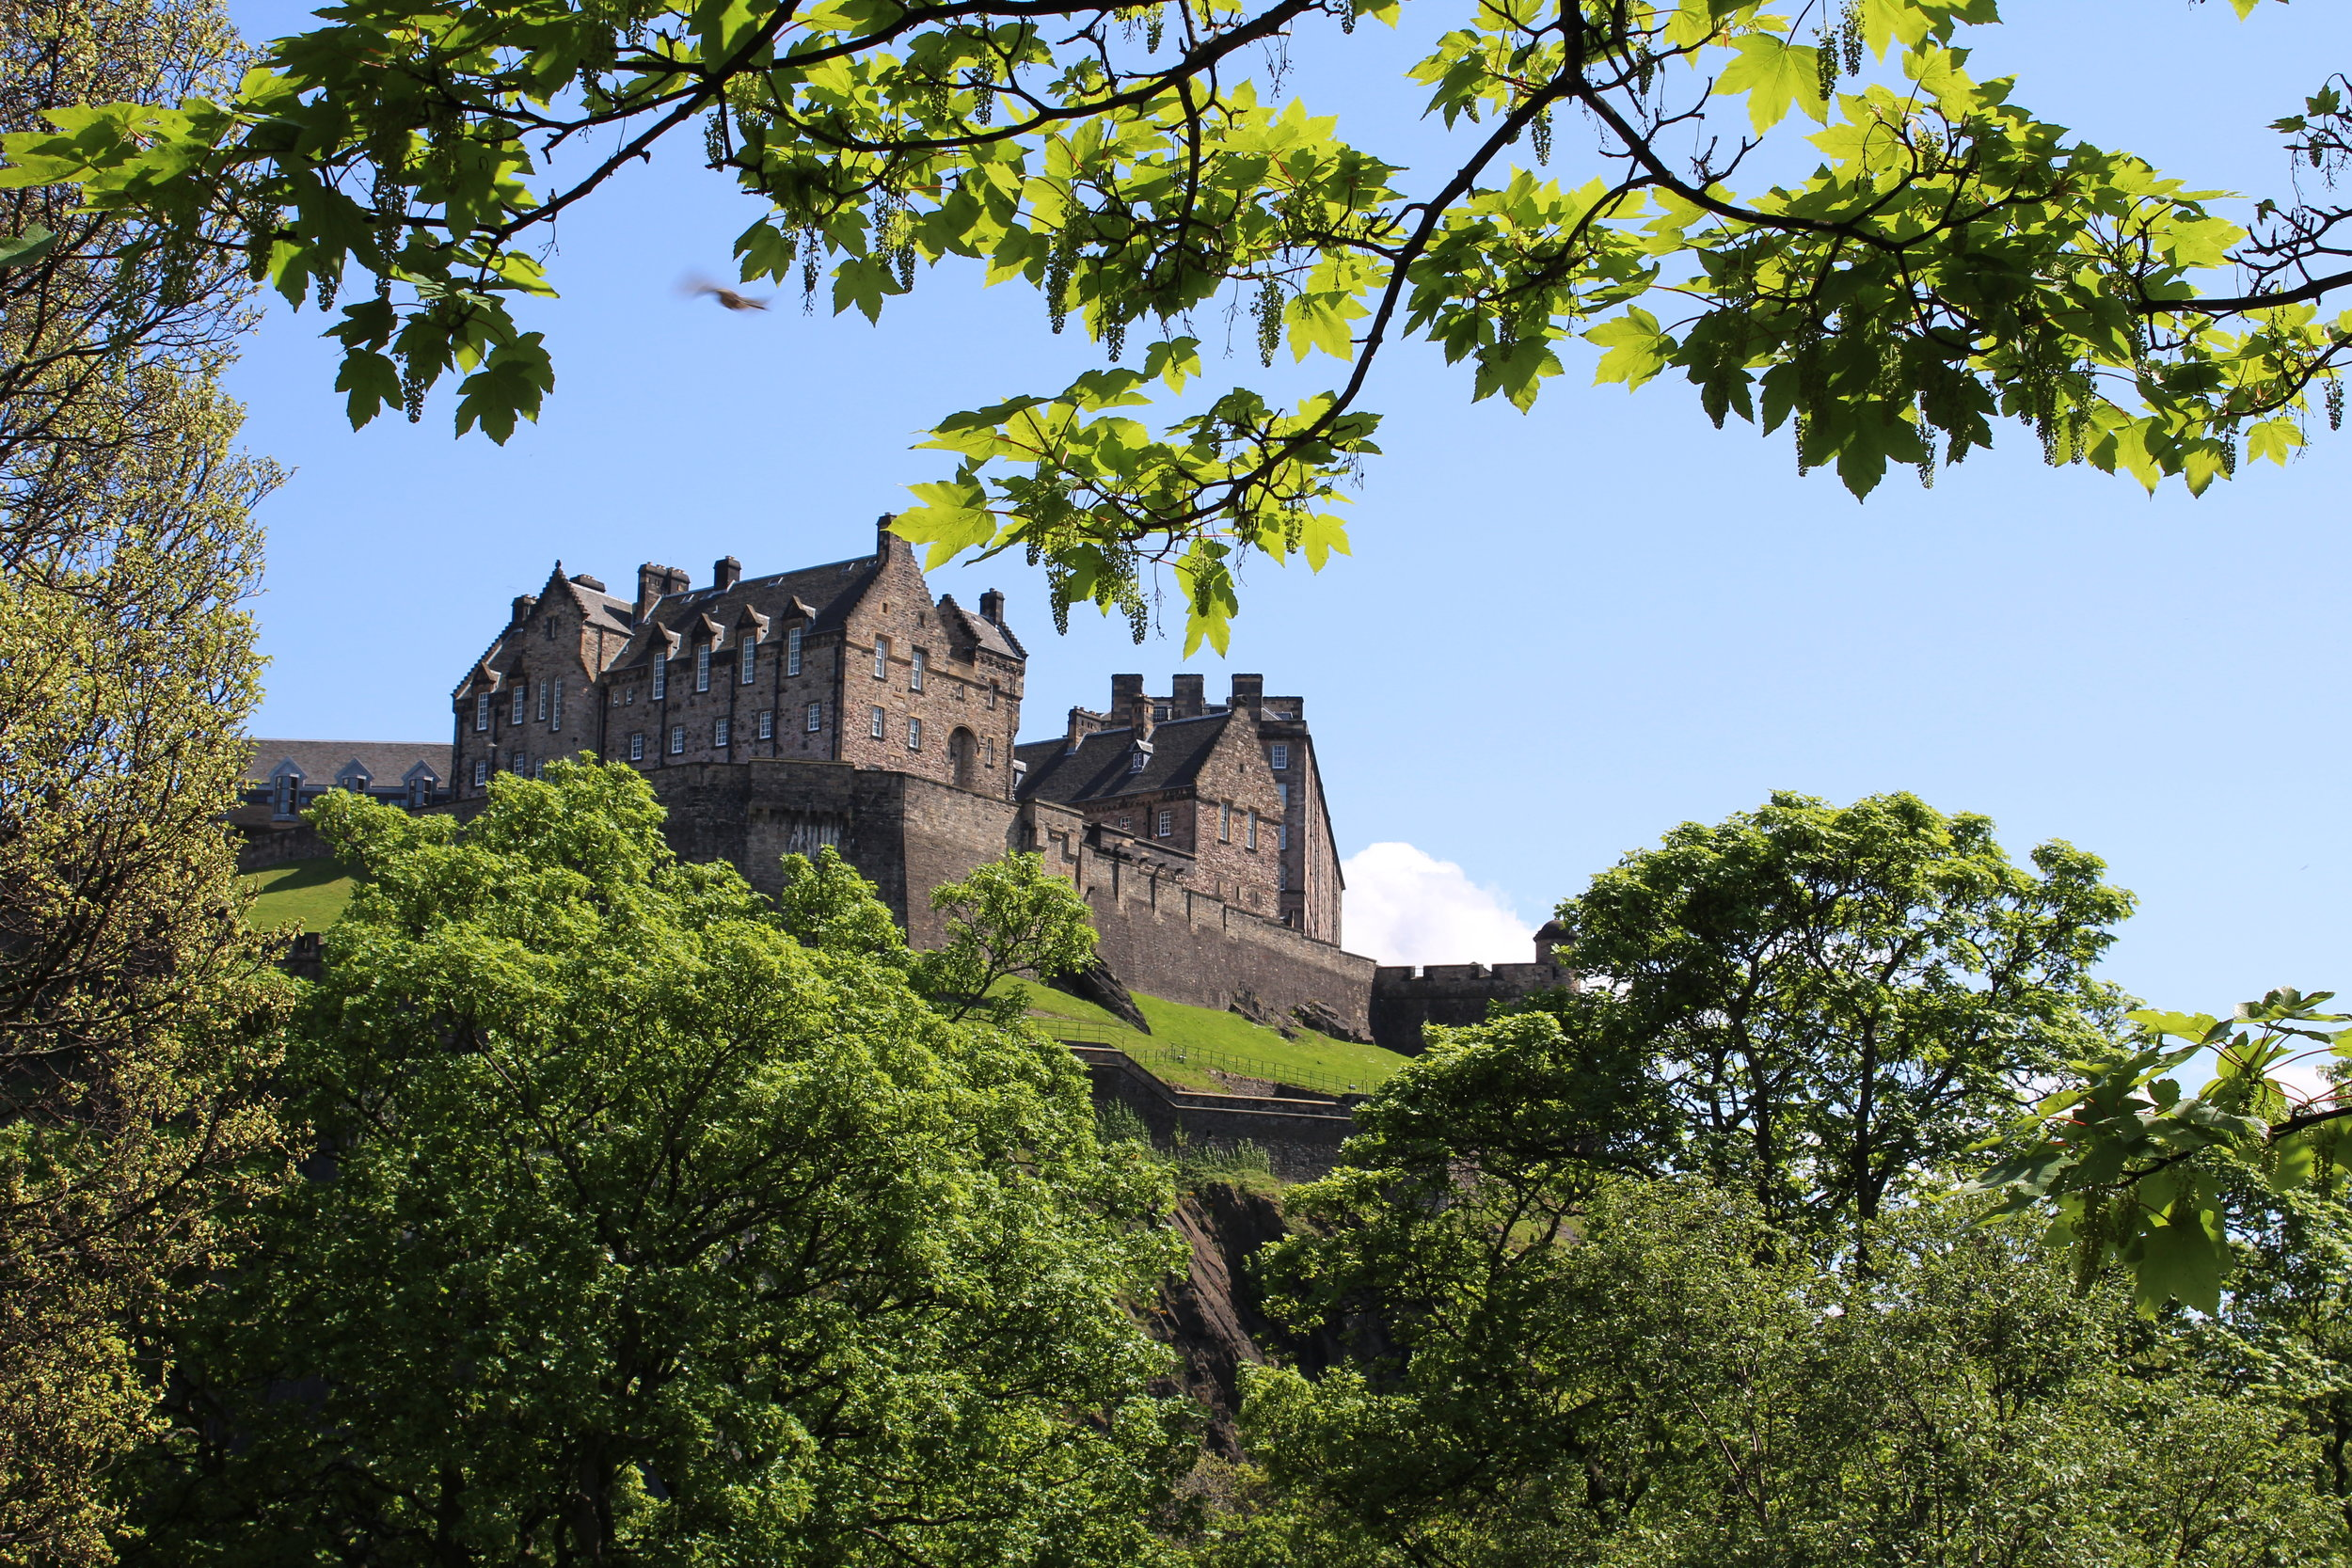 The Castle on the Hill.